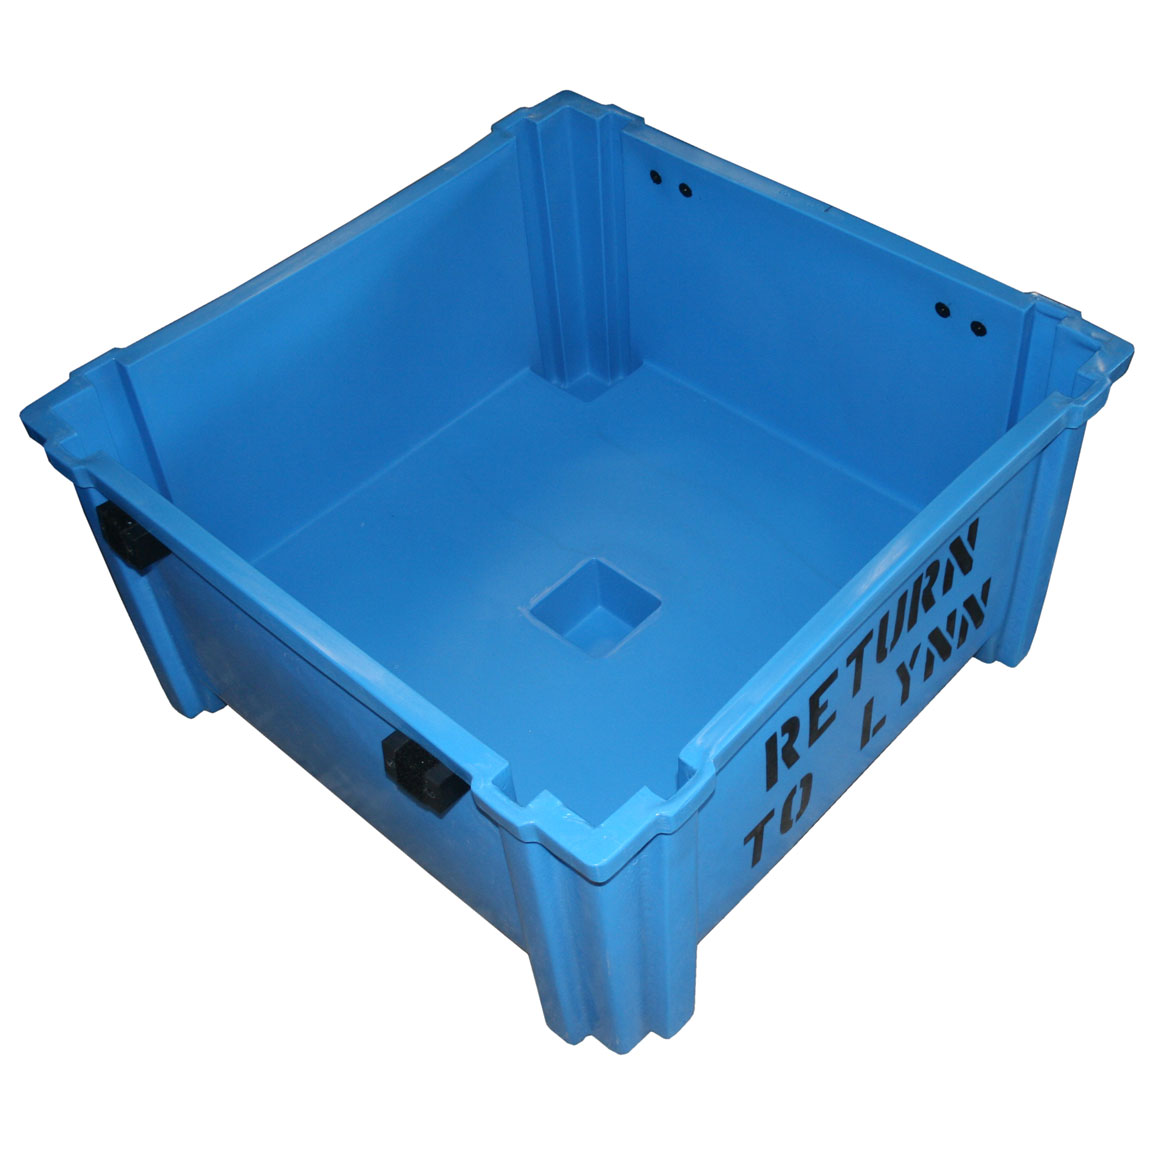 HL-702 - HL Series High-Load Stacking Container - 40.5 x 40.5 x 29.5